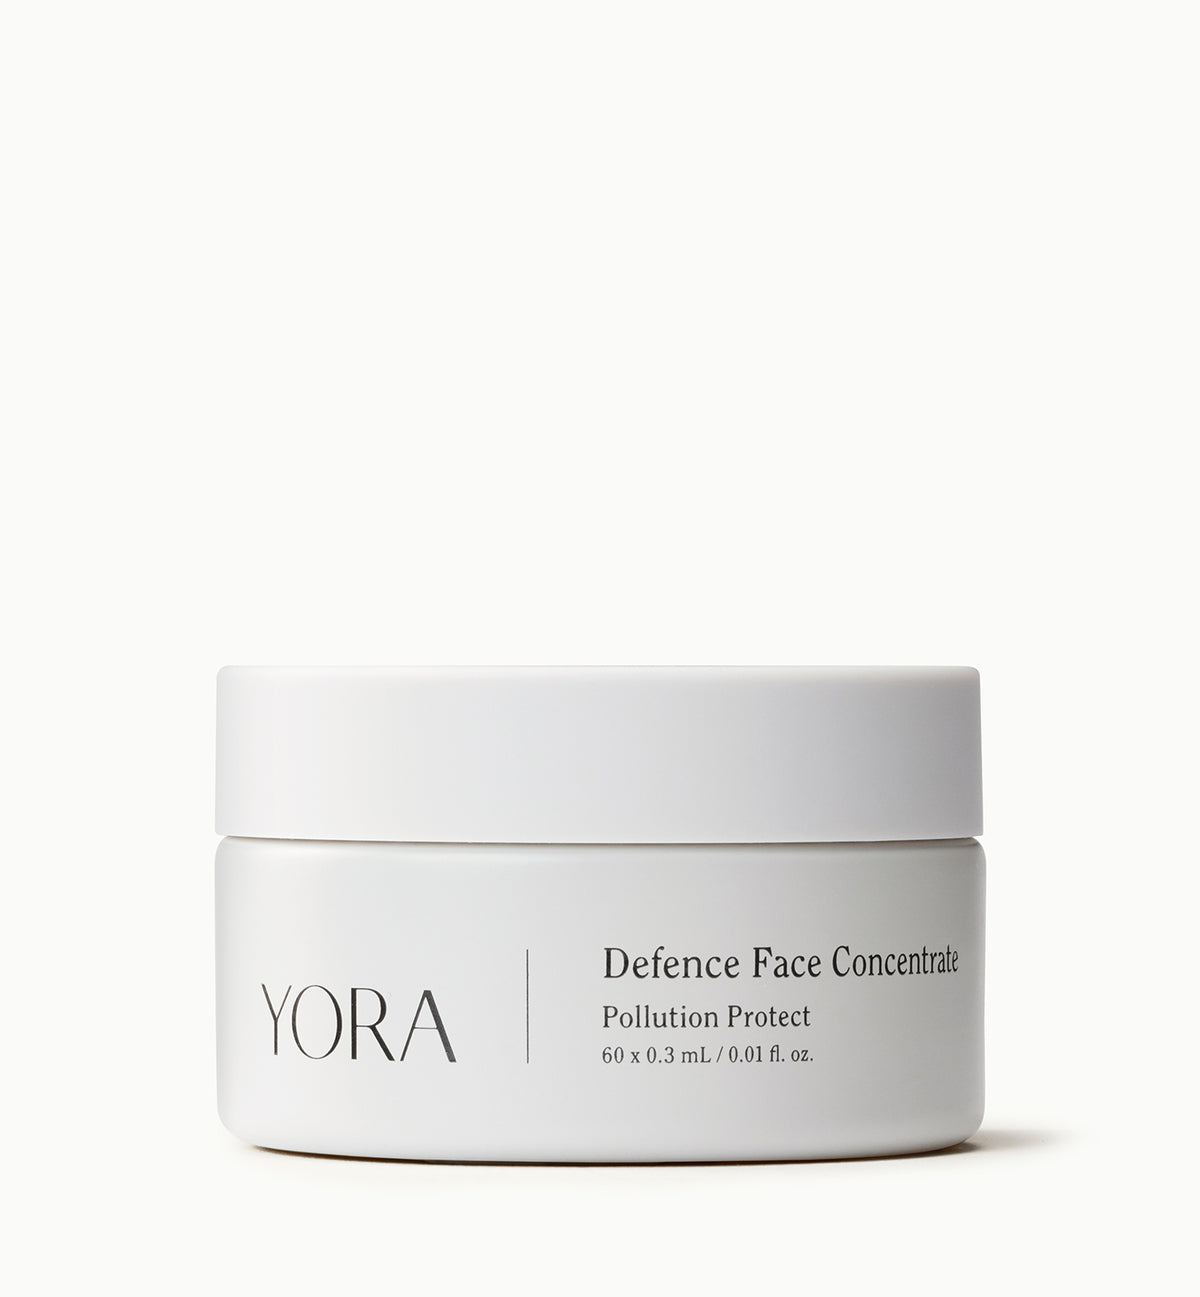 Defence Face Concentrate